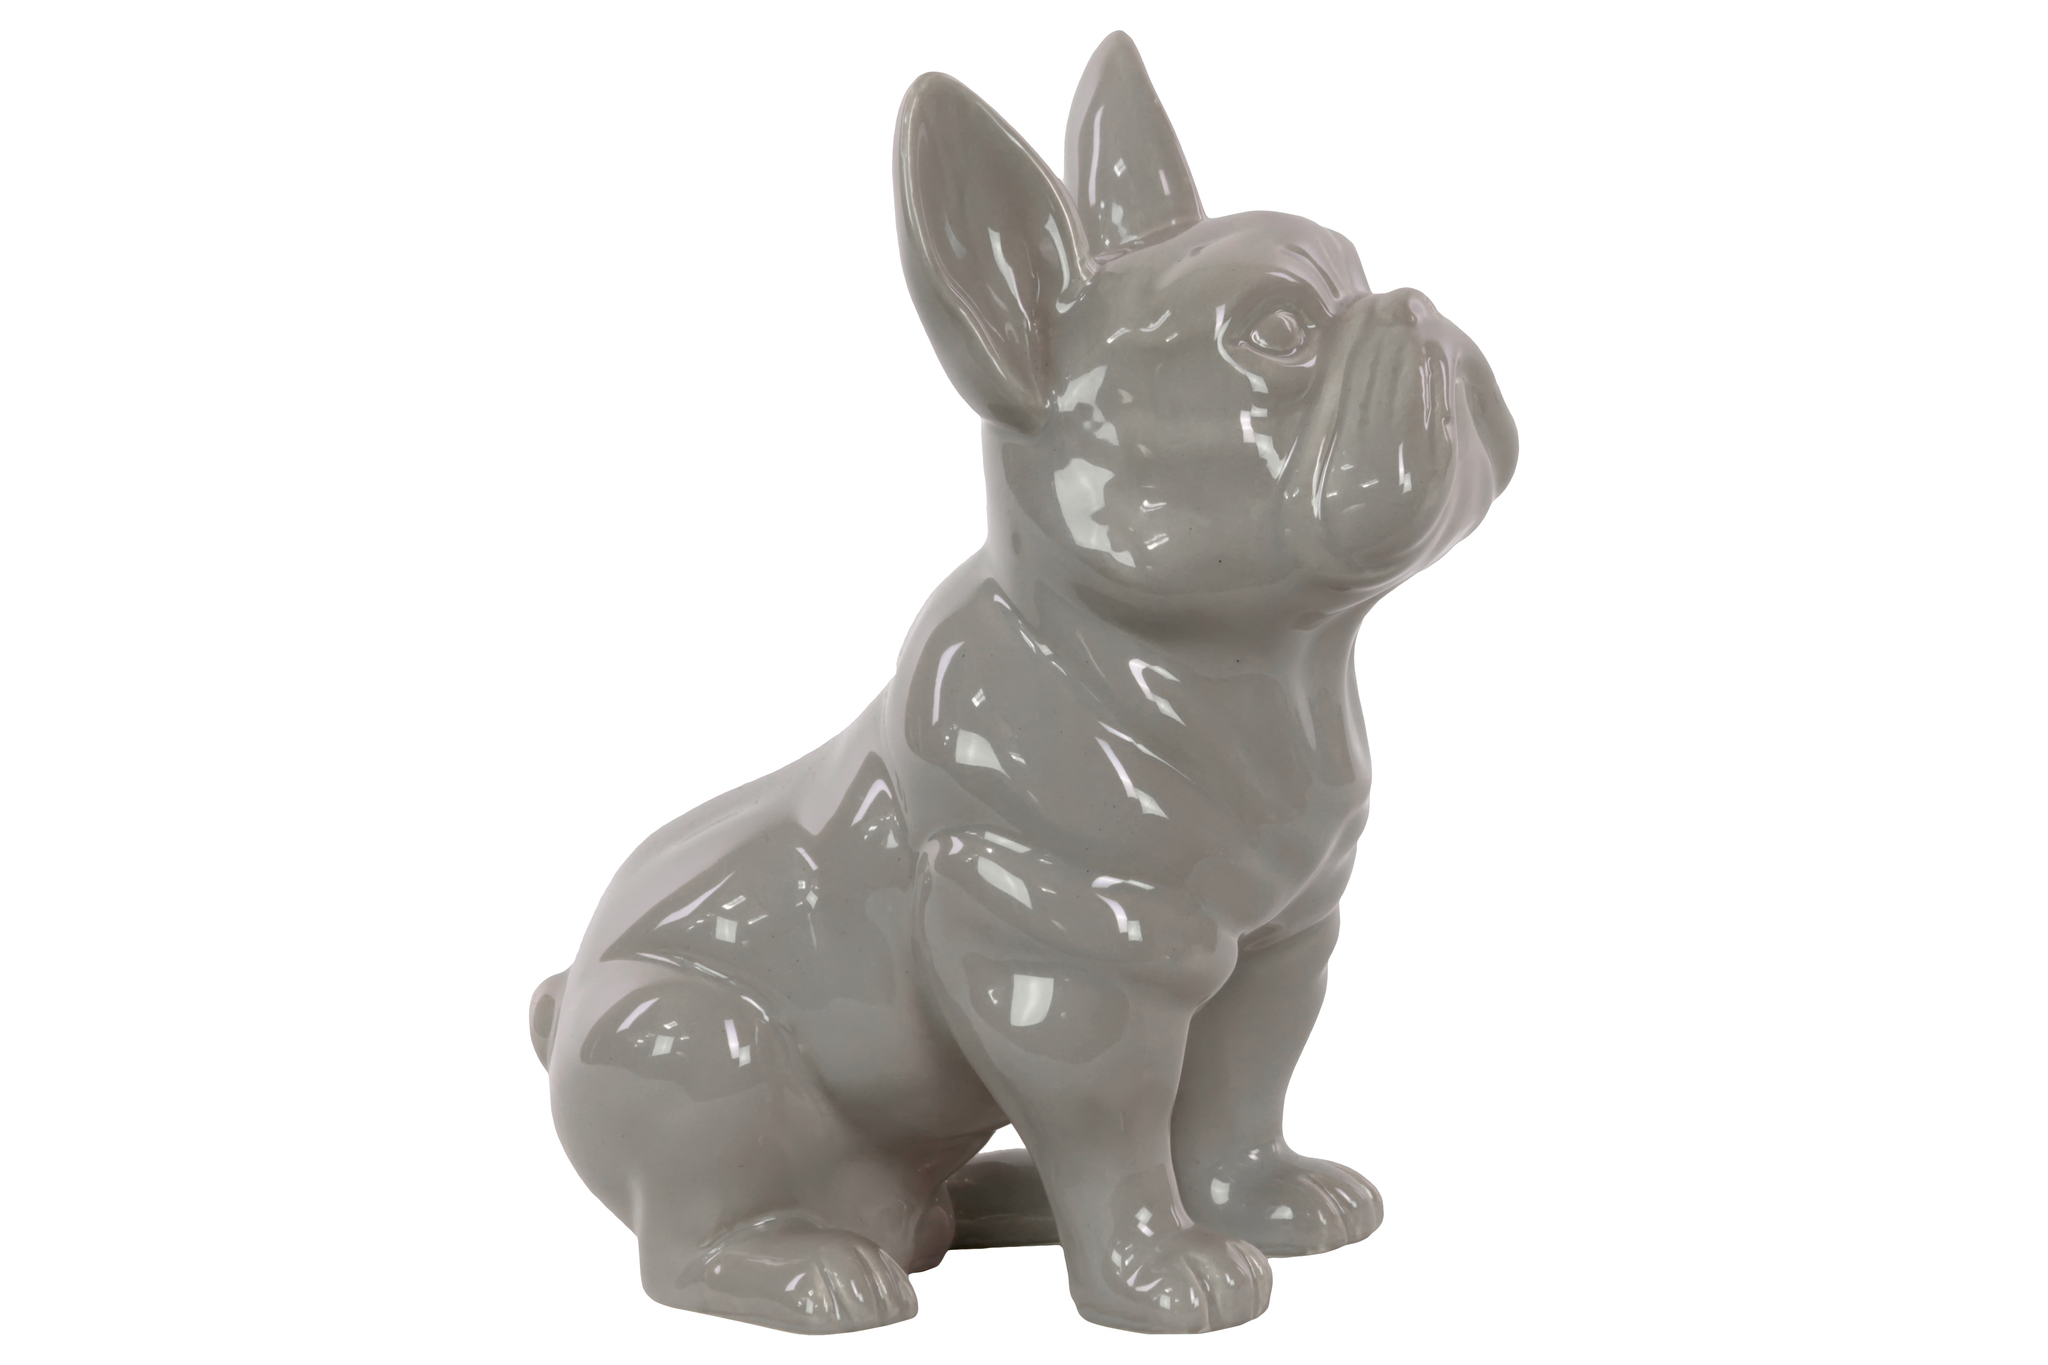 Urban Trends Collection: Ceramic Dog Figurine, Gloss Finish, Gray by Urban Trends Collection